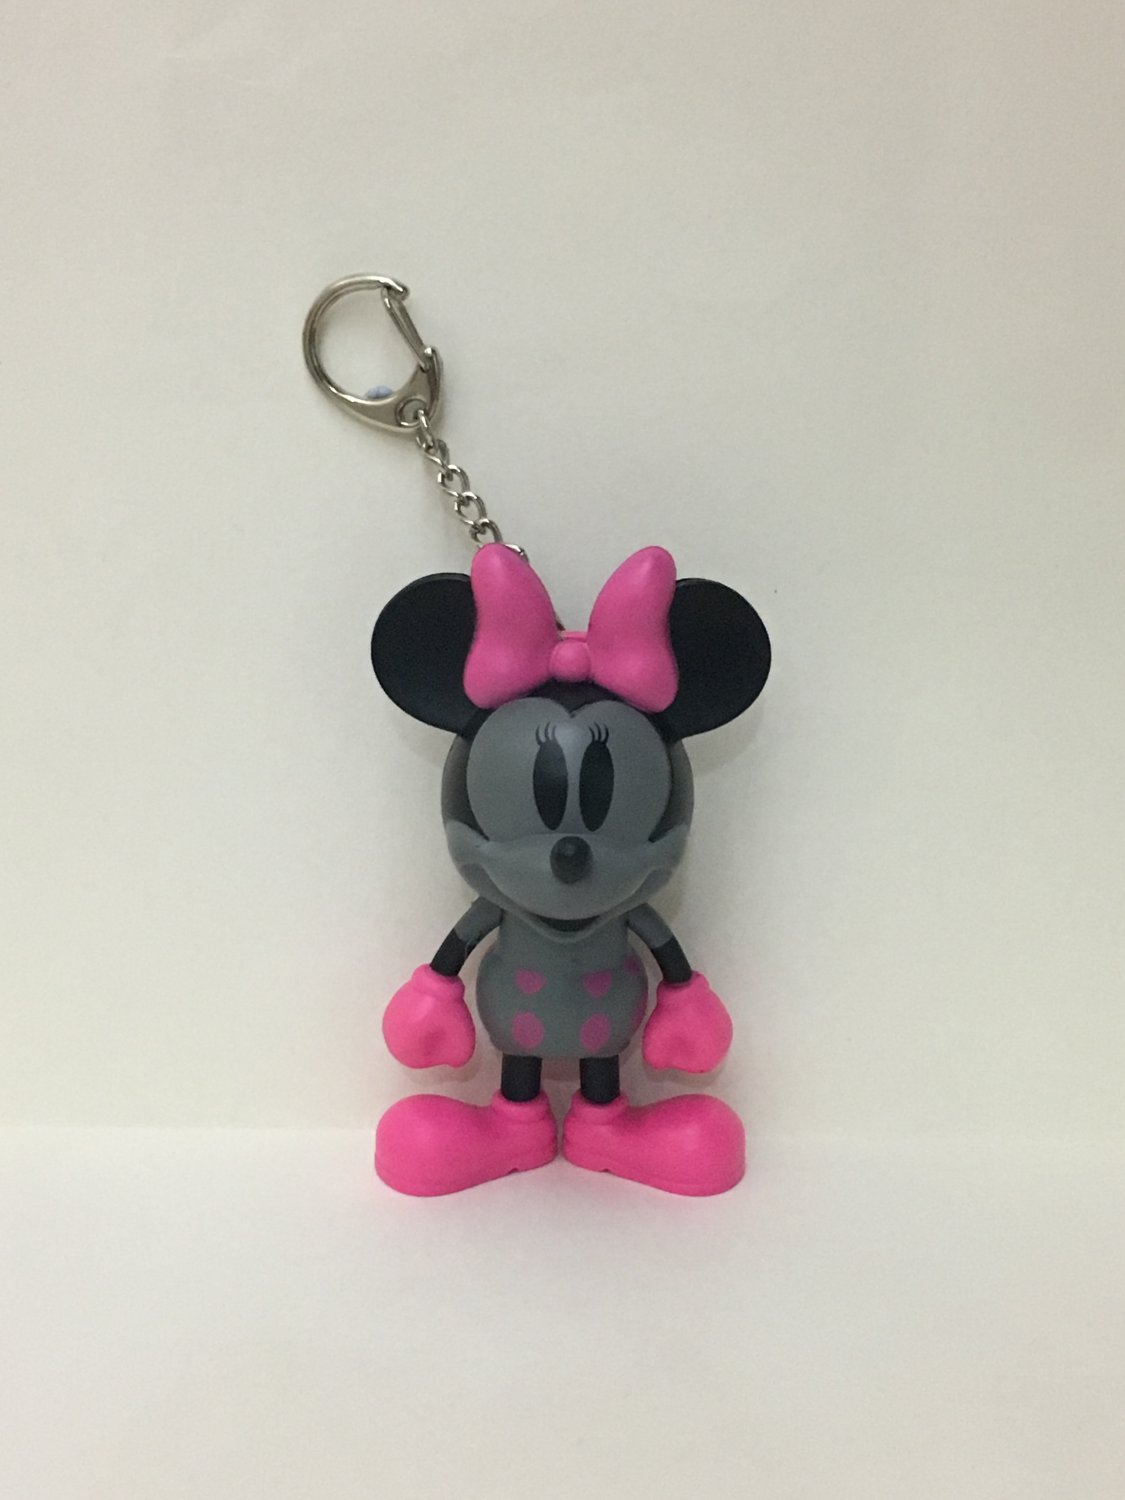 7-11 HK Disney 90th Mickey Mouse and Friends Black Minnie Keychain